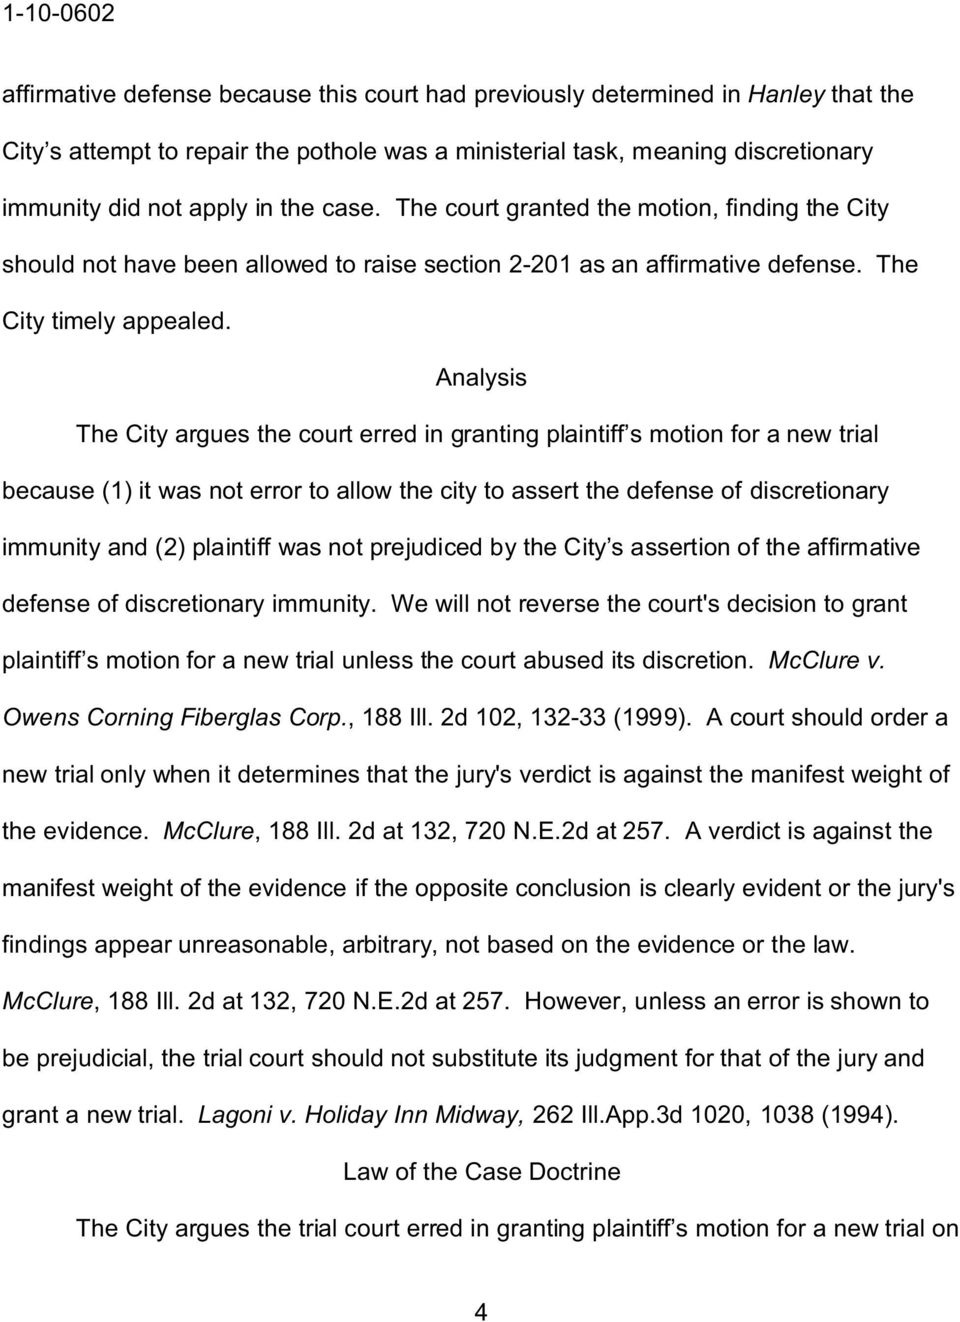 Analysis The City argues the court erred in granting plaintiff s motion for a new trial because (1 it was not error to allow the city to assert the defense of discretionary immunity and (2 plaintiff